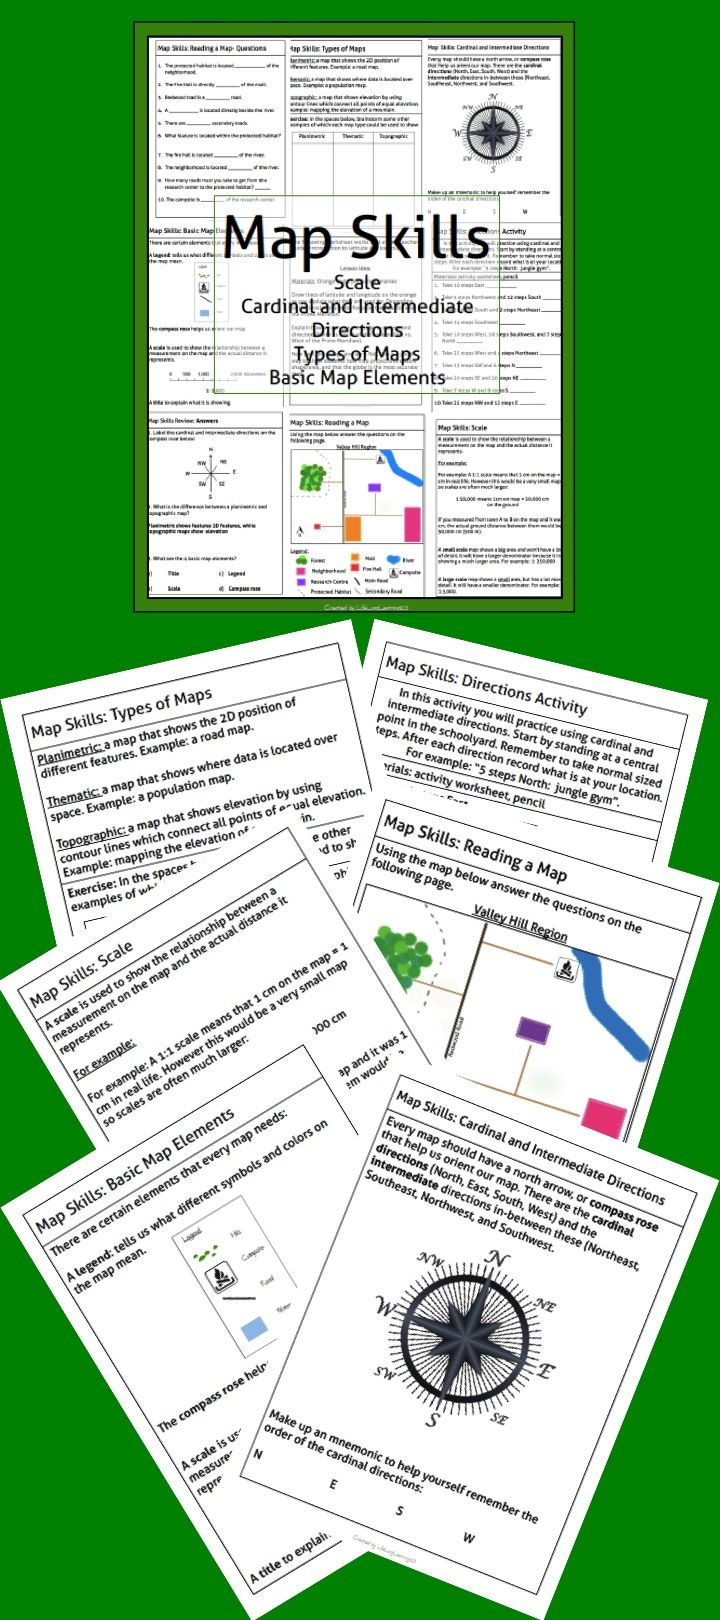 Compass Rose Worksheets Middle School This Package Contains A Variety Of Handouts Worksheets A